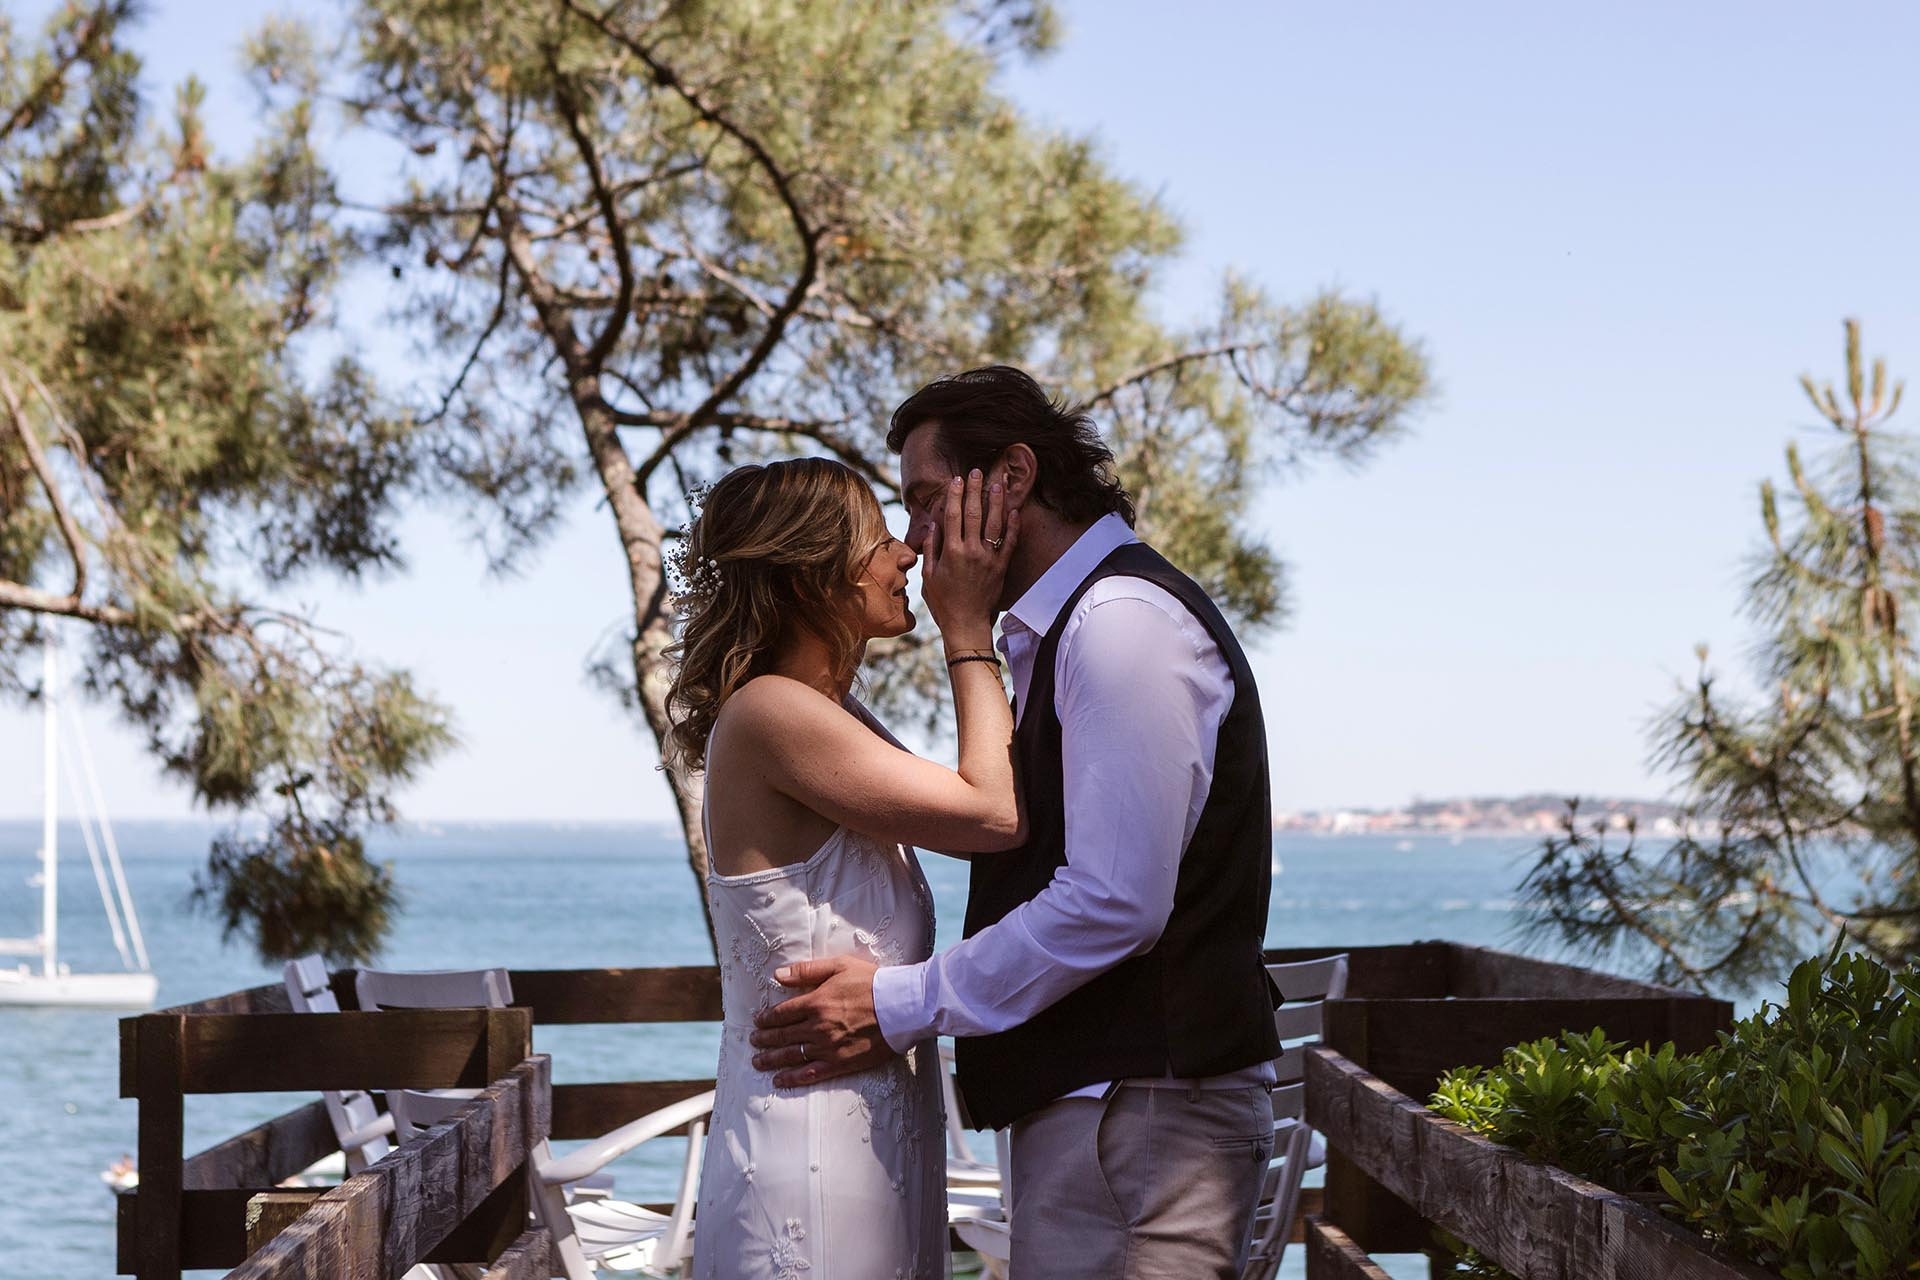 Photographe Mariage Cap Ferret clément Philippon Photographe wedding Bordeaux bassin arcachon